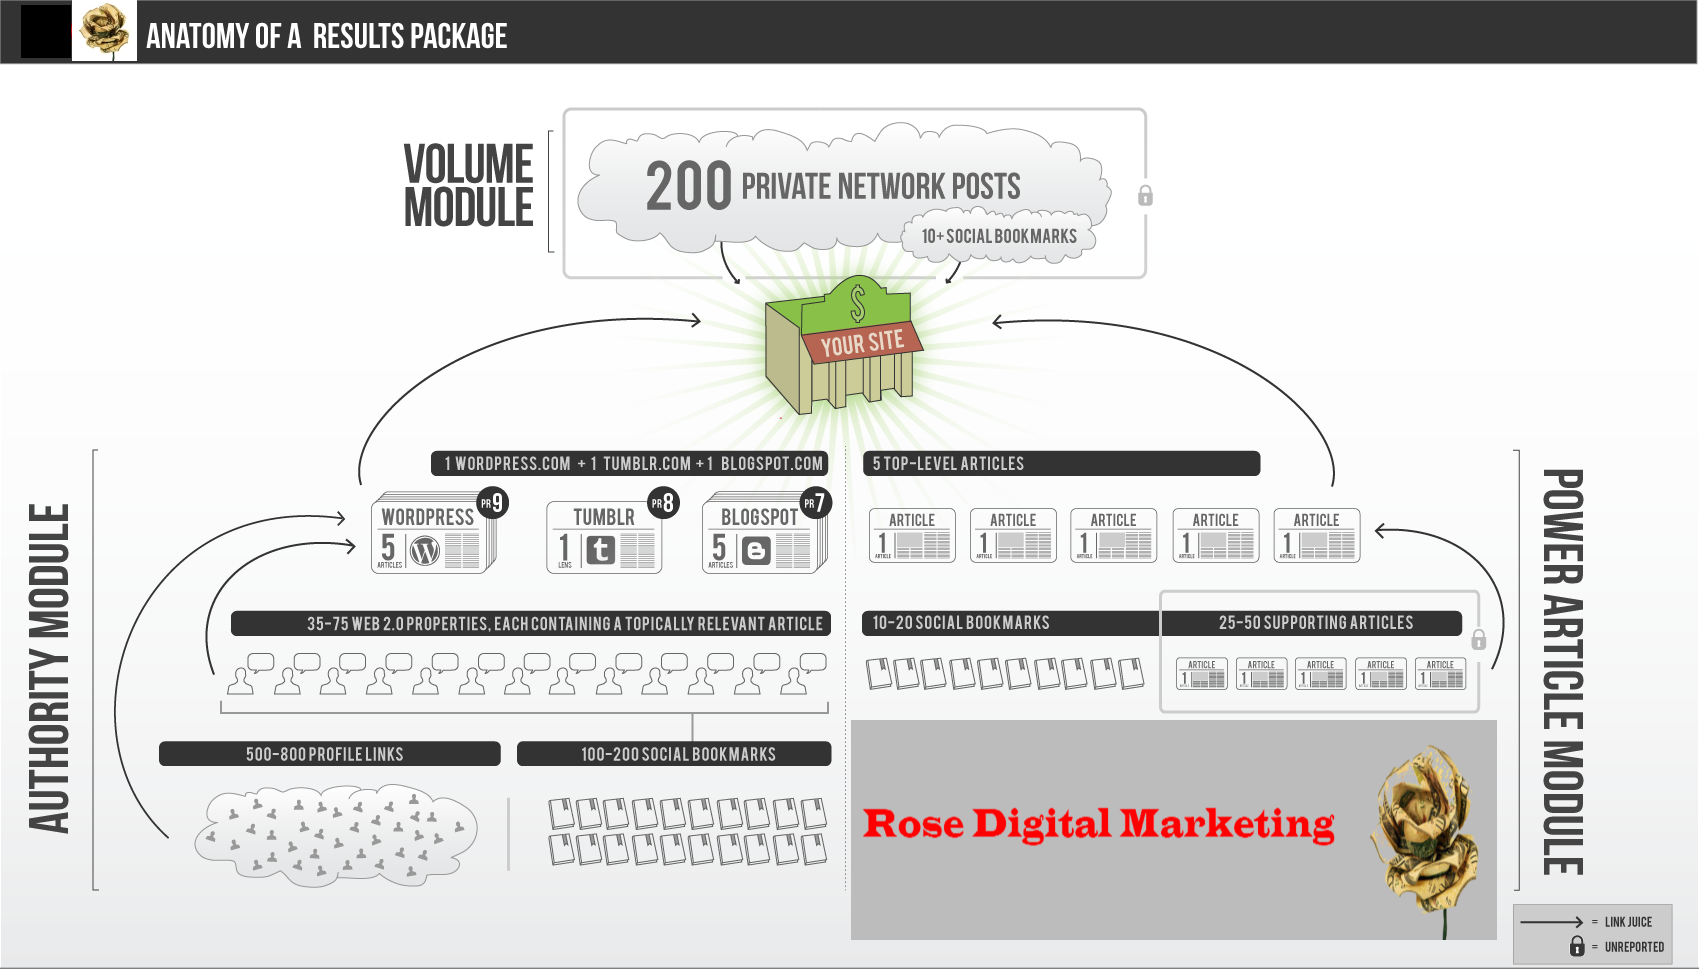 image of RDM SEO infographic